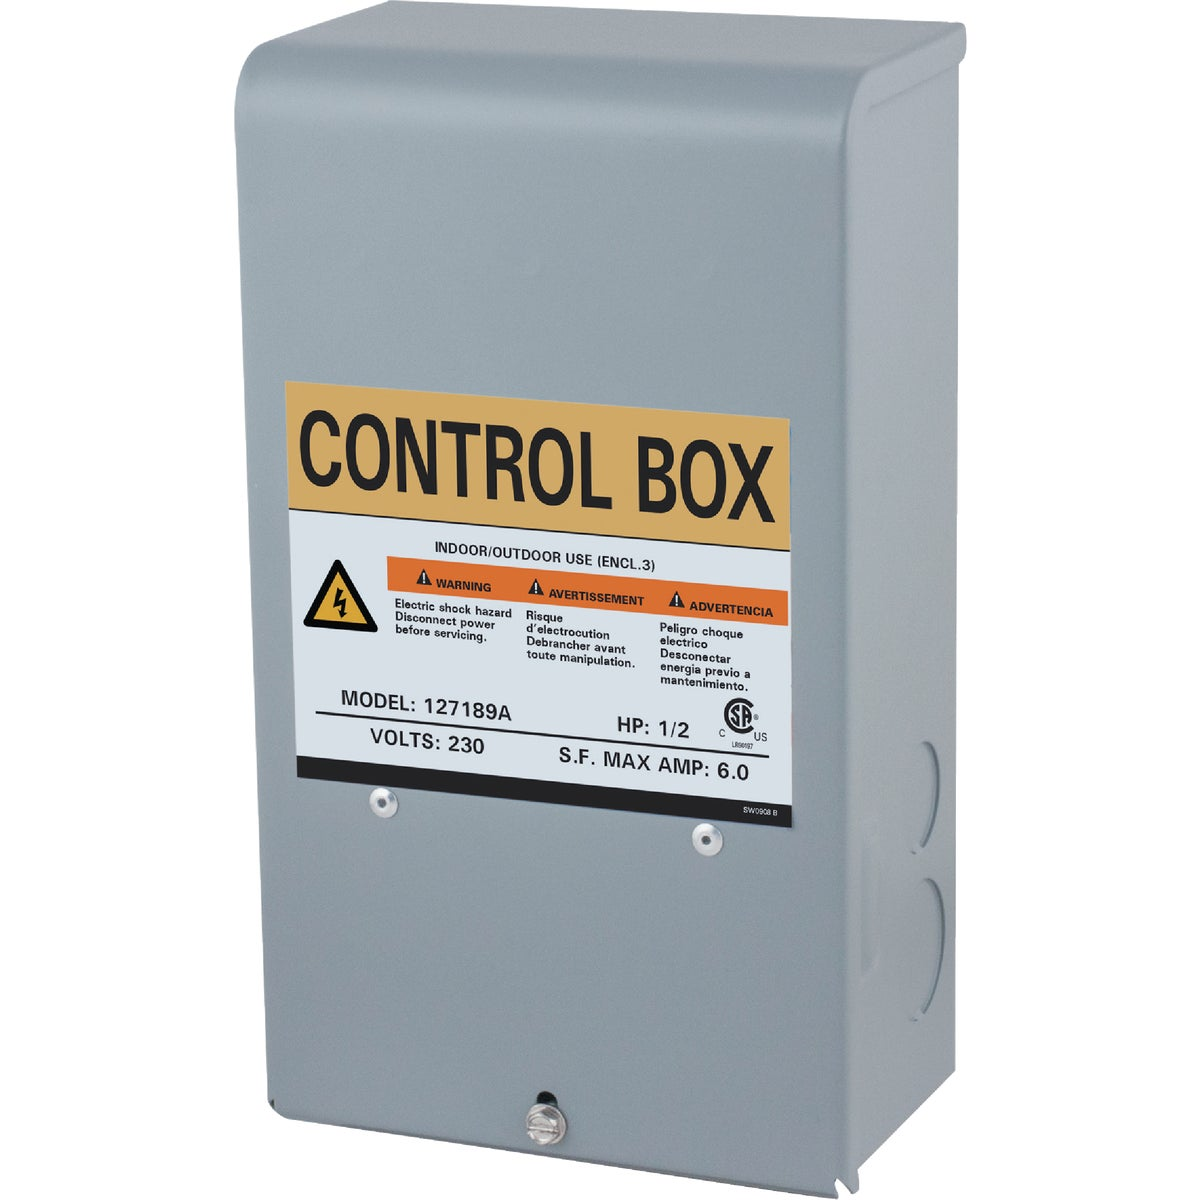 1/2HP 230V CONTROL BOX - 127189 by Star Water Systems